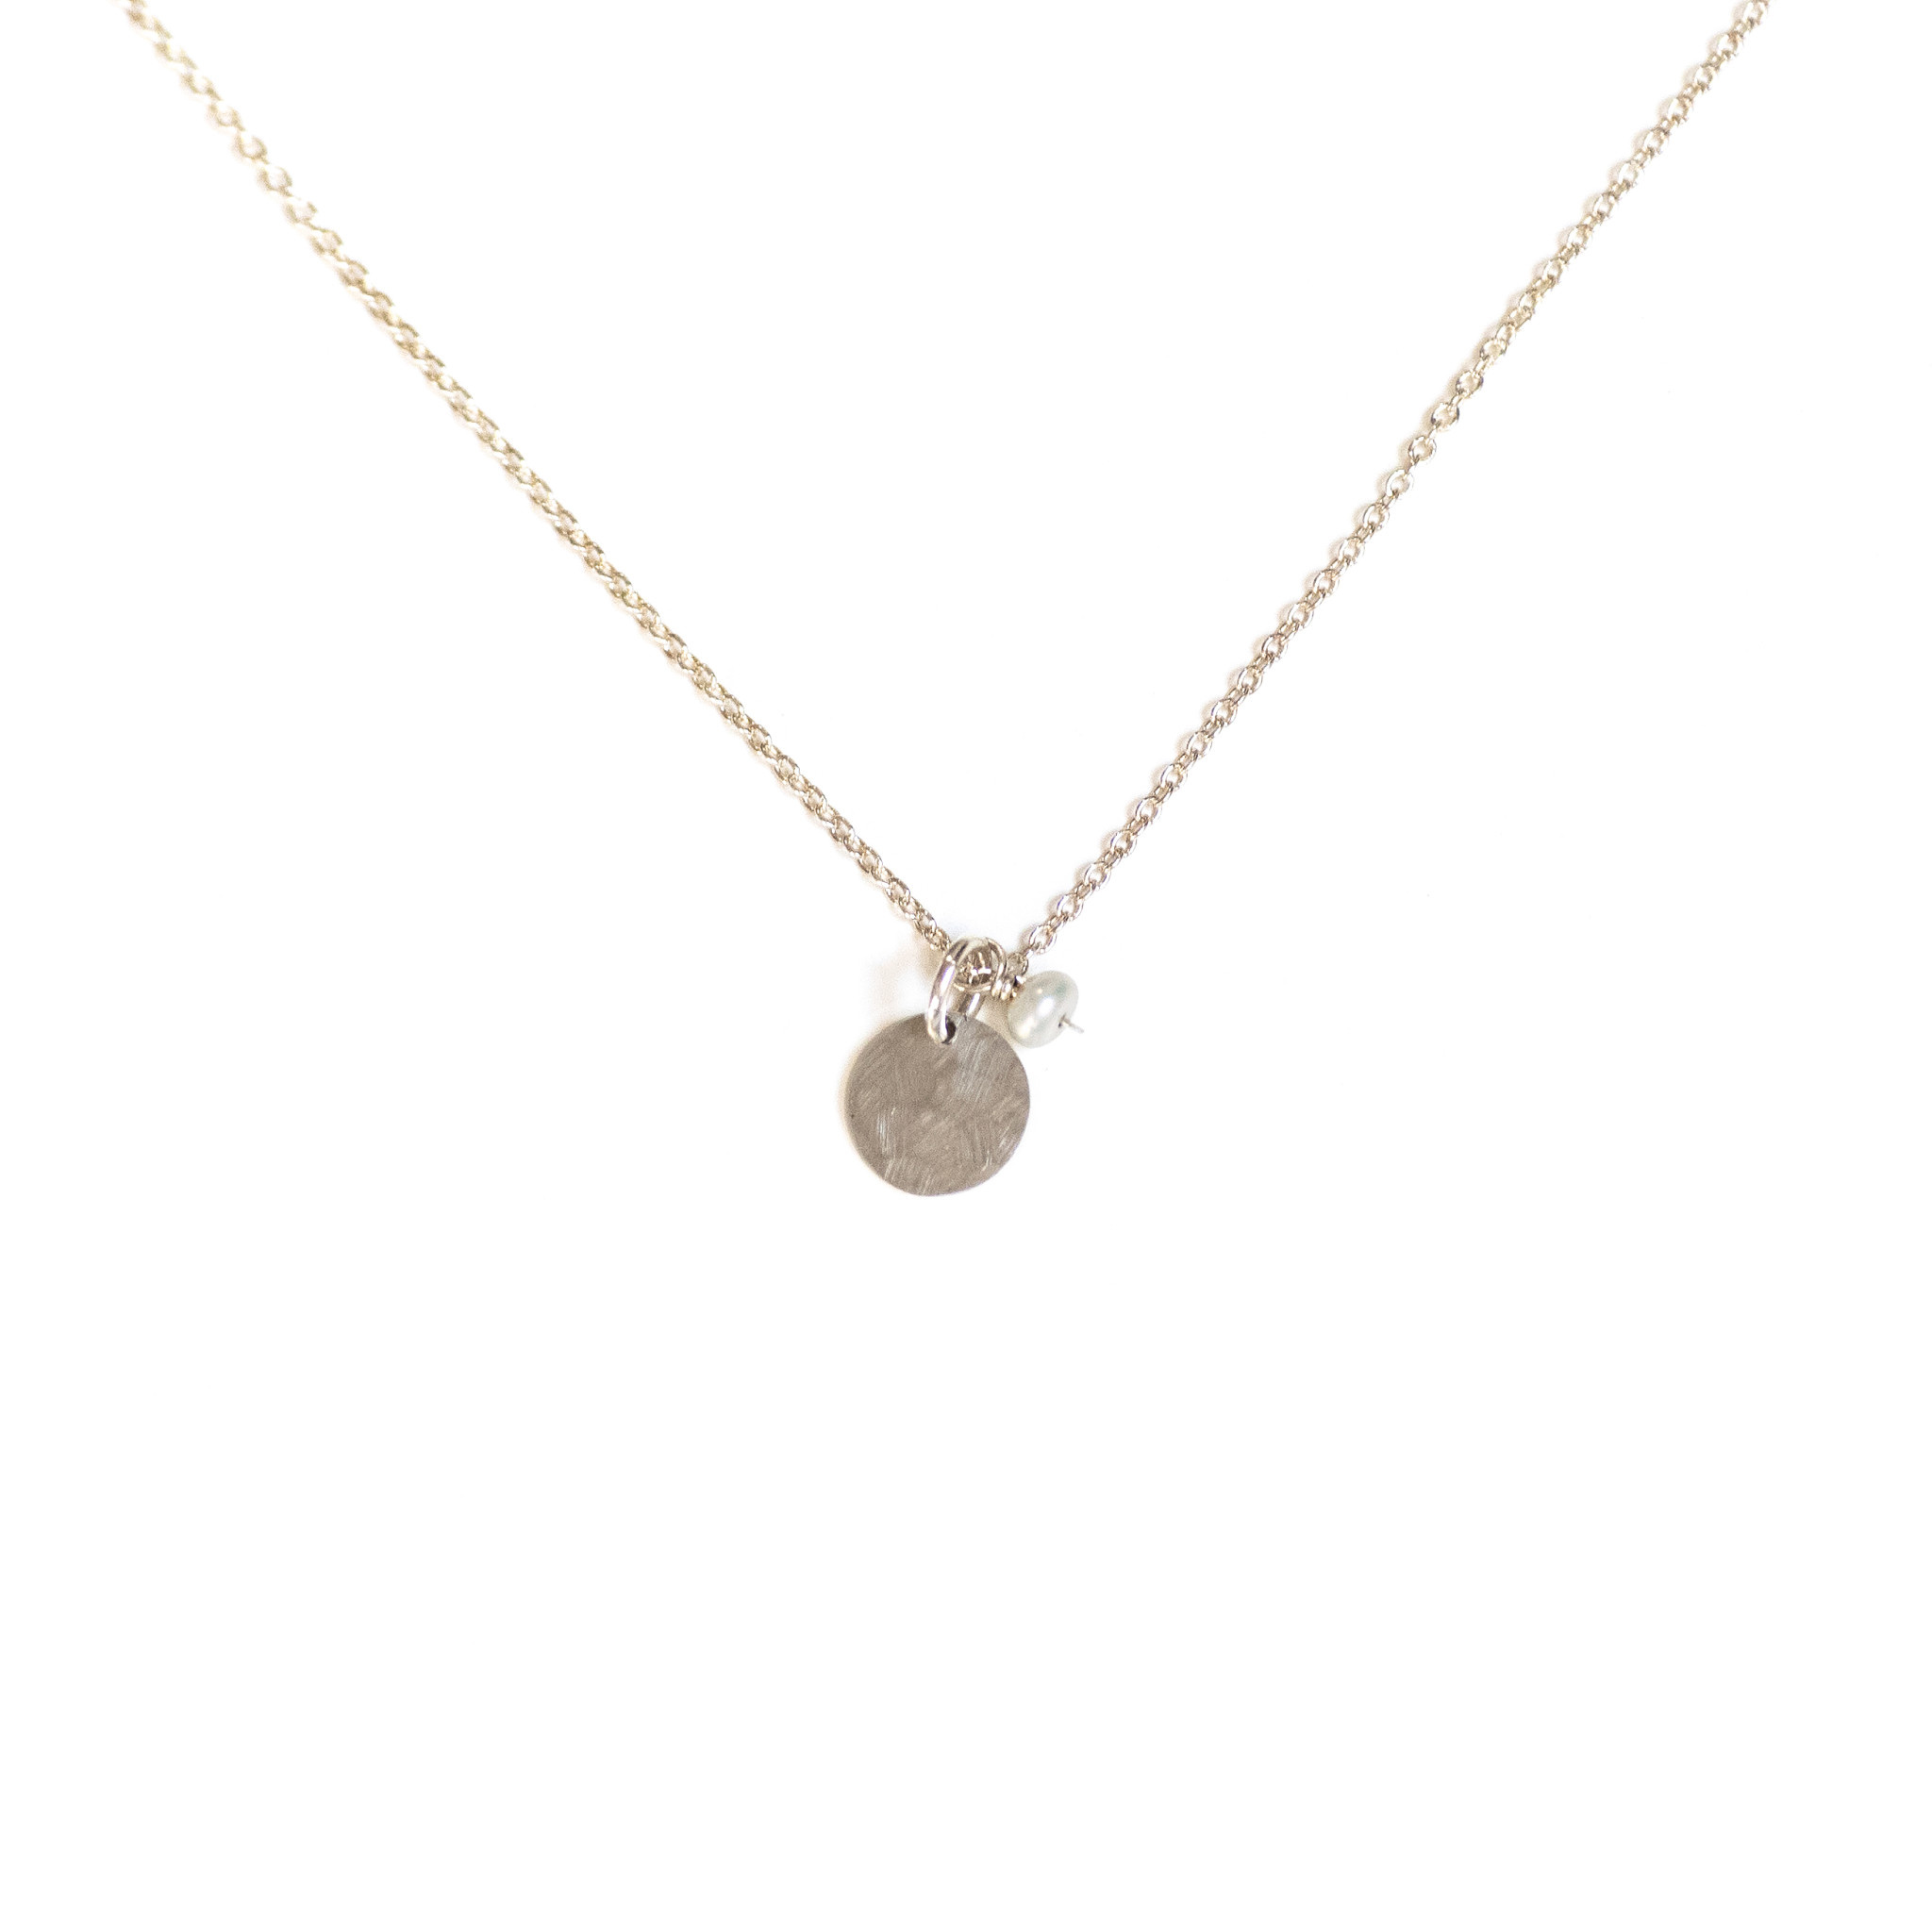 Emma Alexander Pearl Charms Necklace - Silver